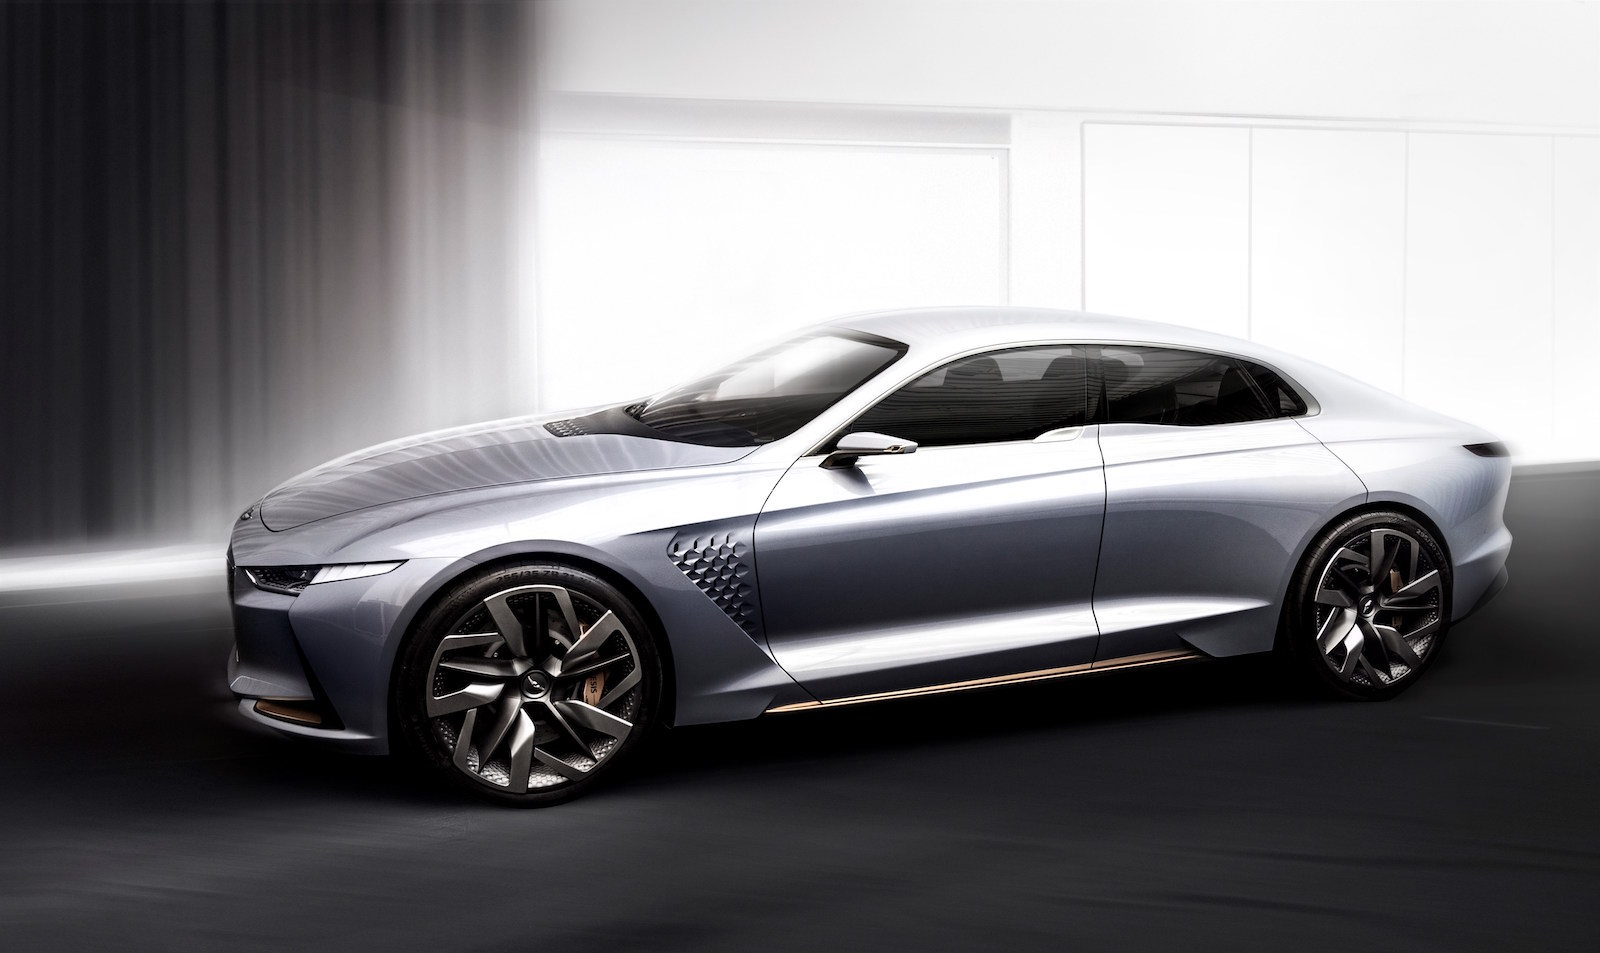 Genesis Ny Concept Future Bmw Rival: Hyundai Boss Confirms Plug-in Hybrid Tech For Genesis